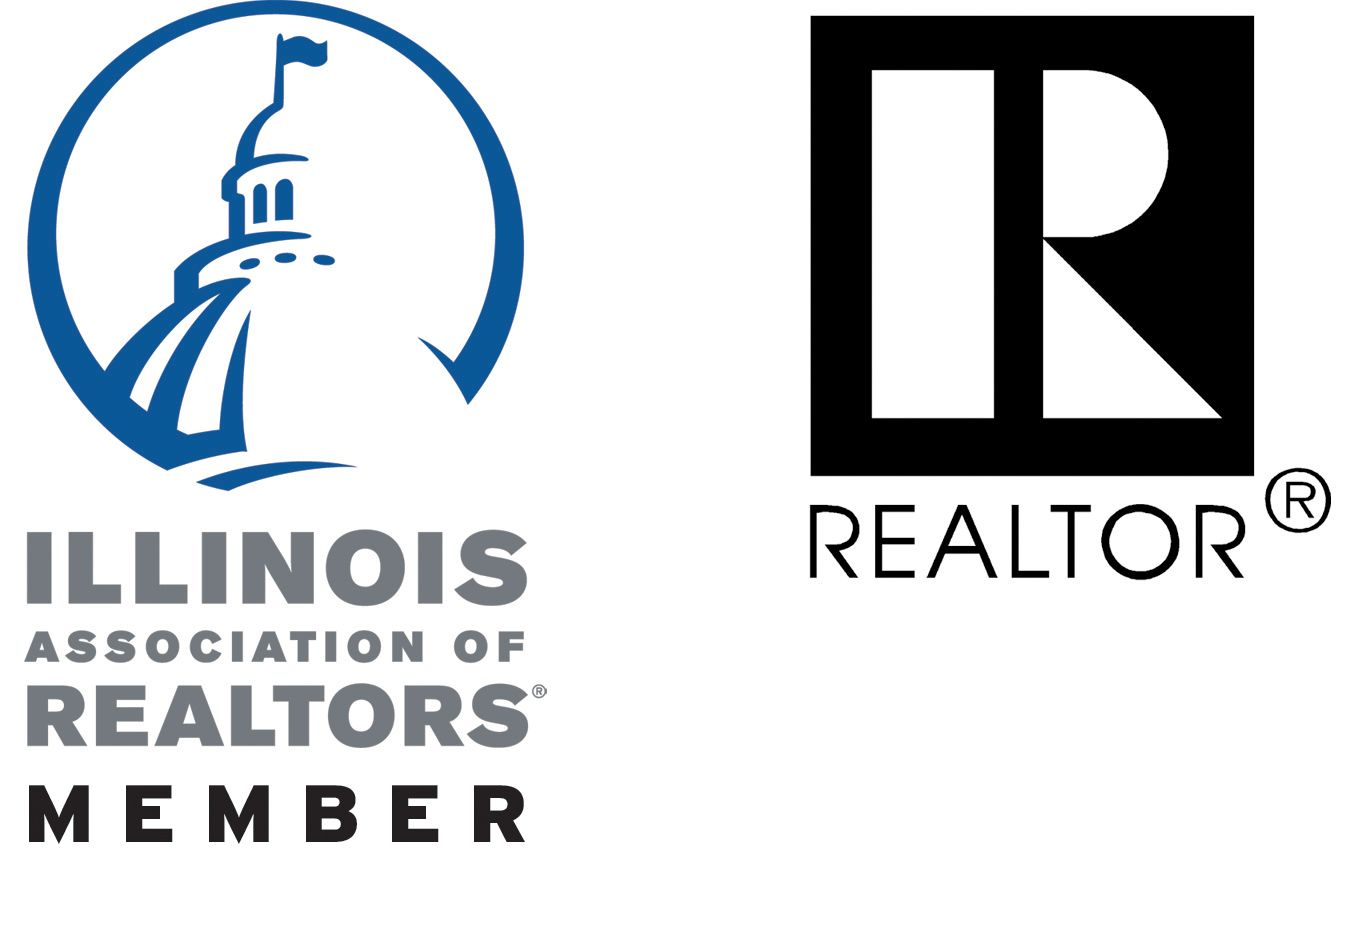 The Illinois Association of Realtors is a housing policy